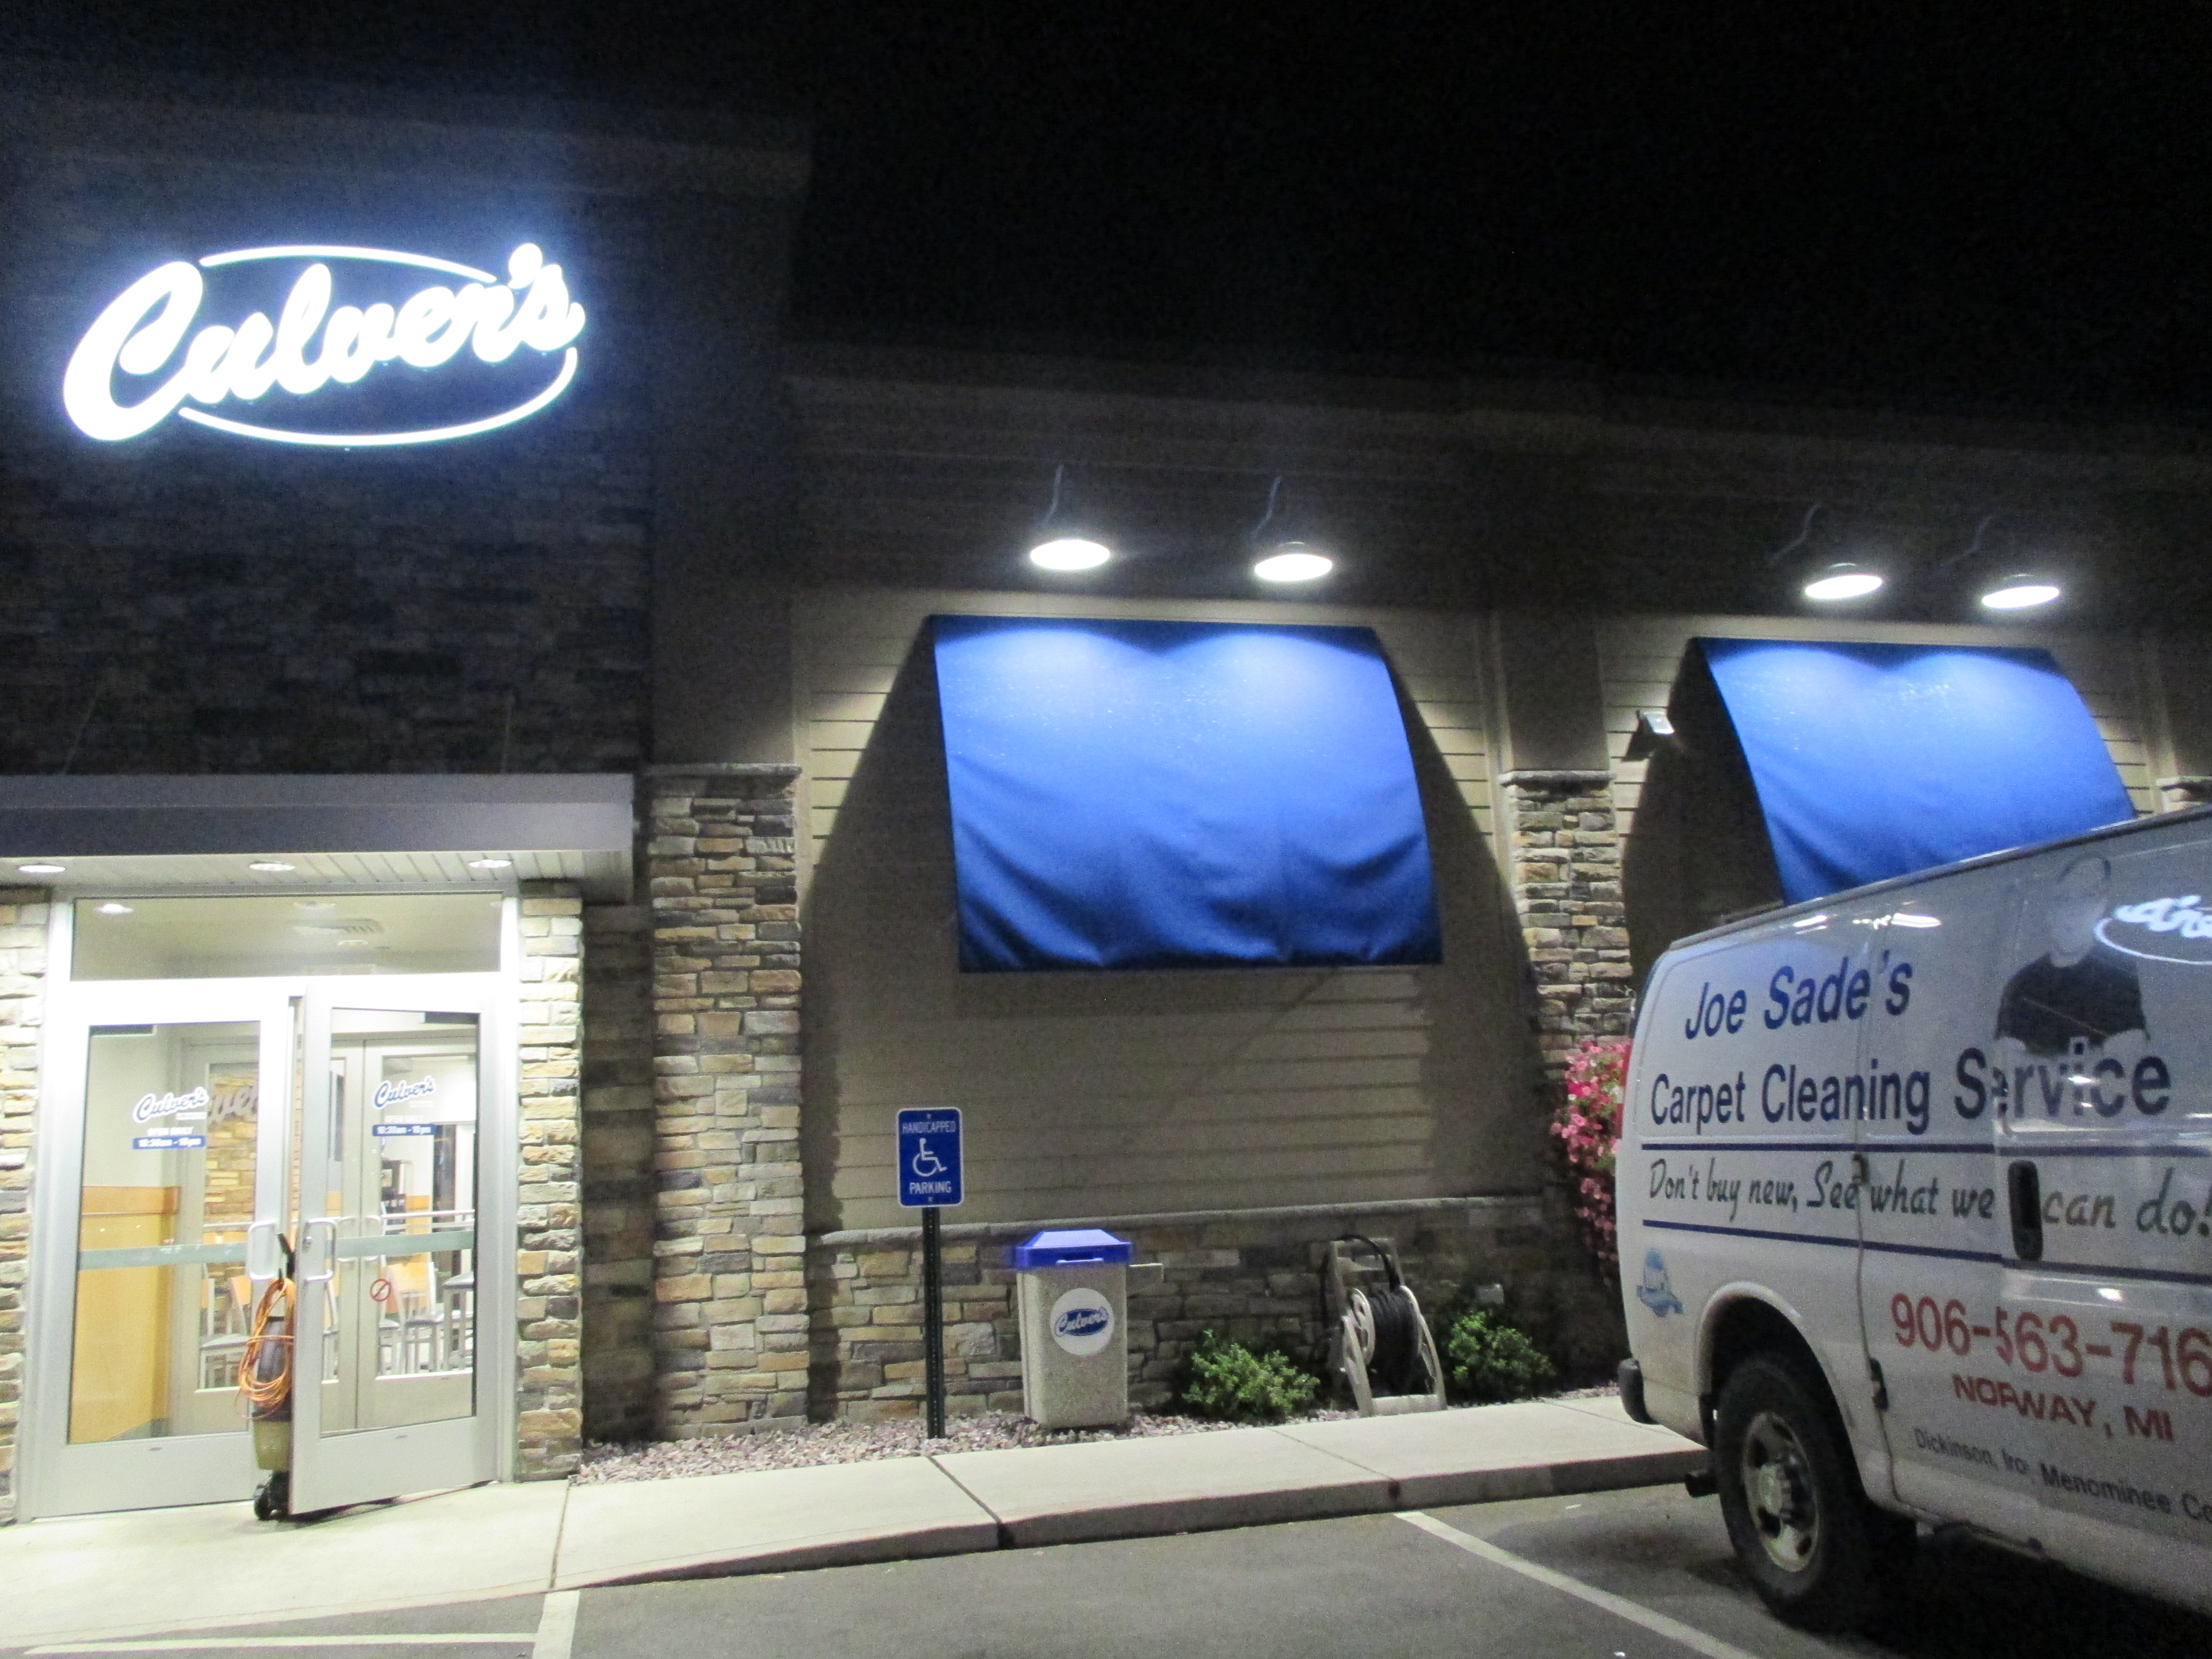 Culver's, what a treat to clean this place!